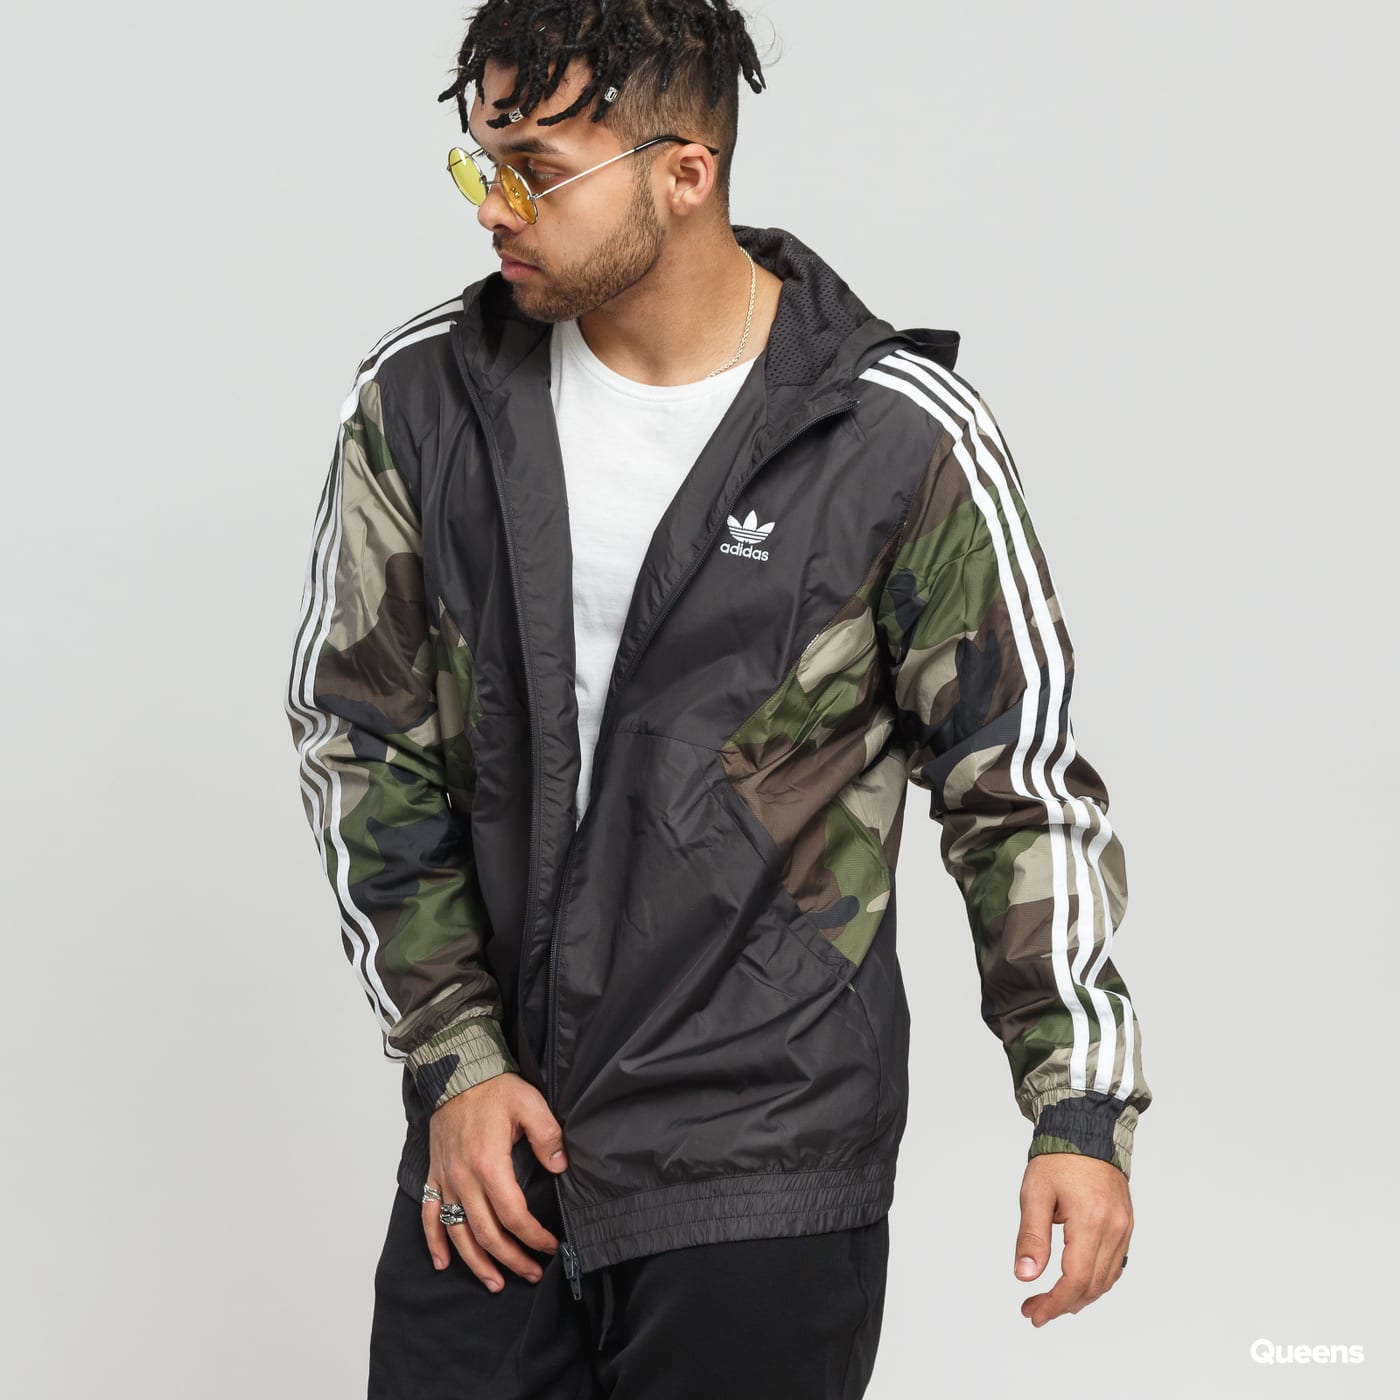 fa6b608db0ed7e Windbreaker adidas Originals Camo Windbreaker black / camo green (DV2049) –  Queens 💚